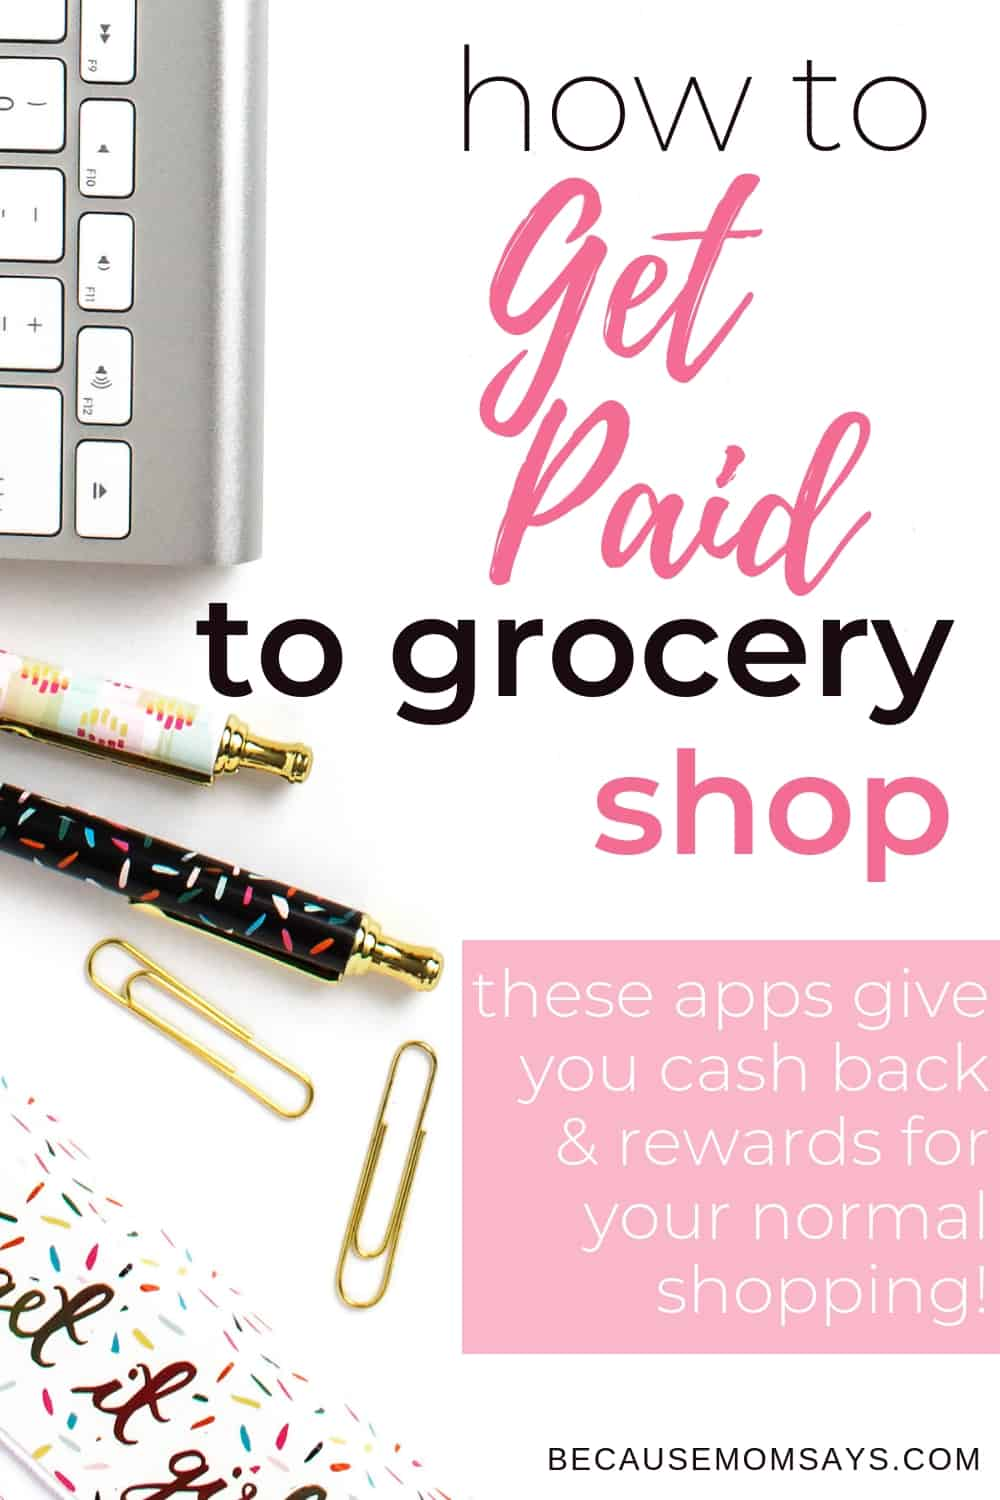 Apps that Pay You to Shop